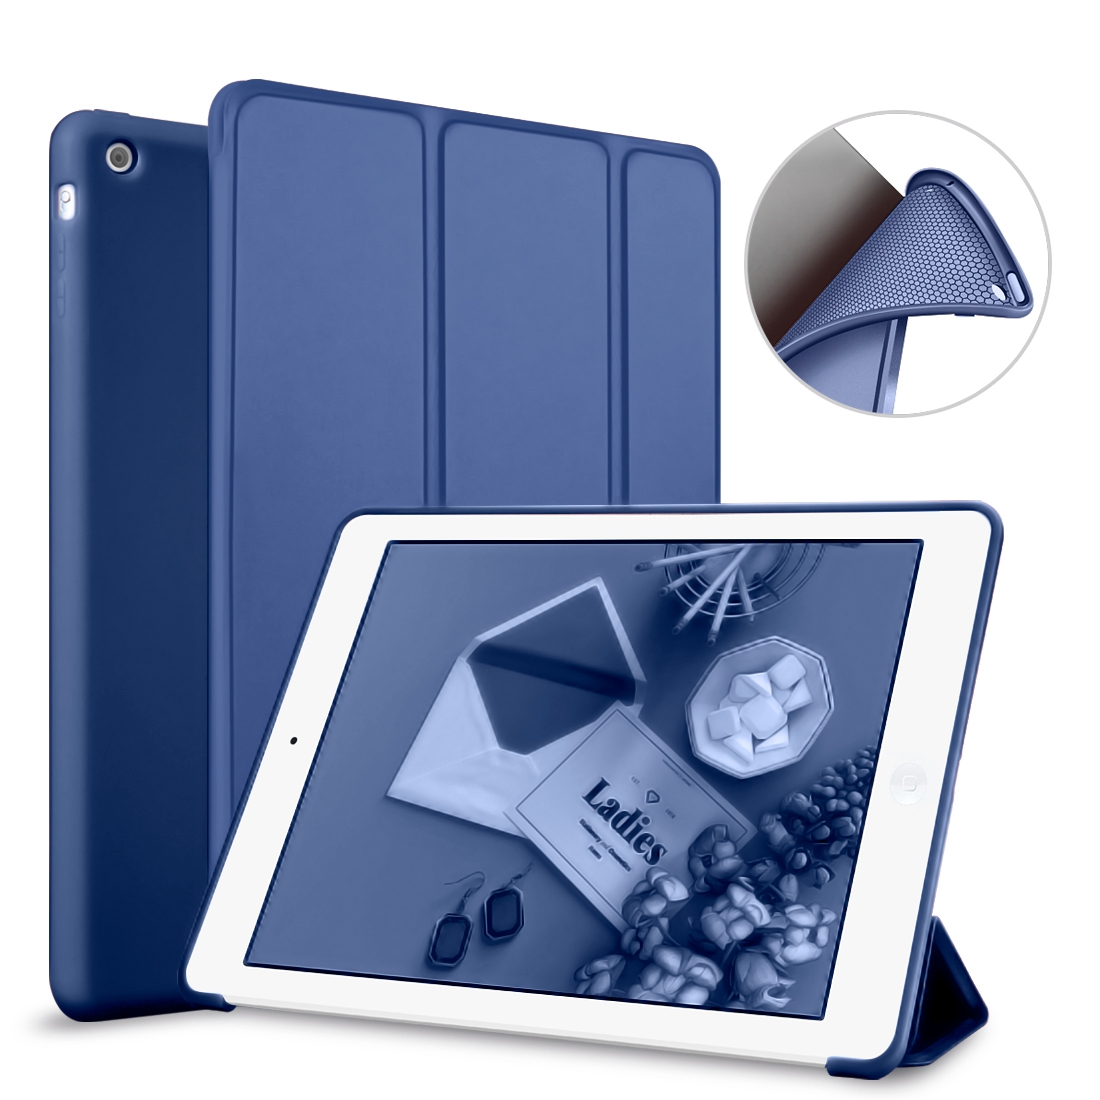 For Apple iPad Air 2 Case,Silicone Smart Cover Soft TPU PU Leather Flip Stand Auto Sleep/Wake the Tablet For iPad 6 Case high quality thickening tpu silicone cover for ipad air ipad 5 case fashion soft transparent froste cover air1 tablet pc stand